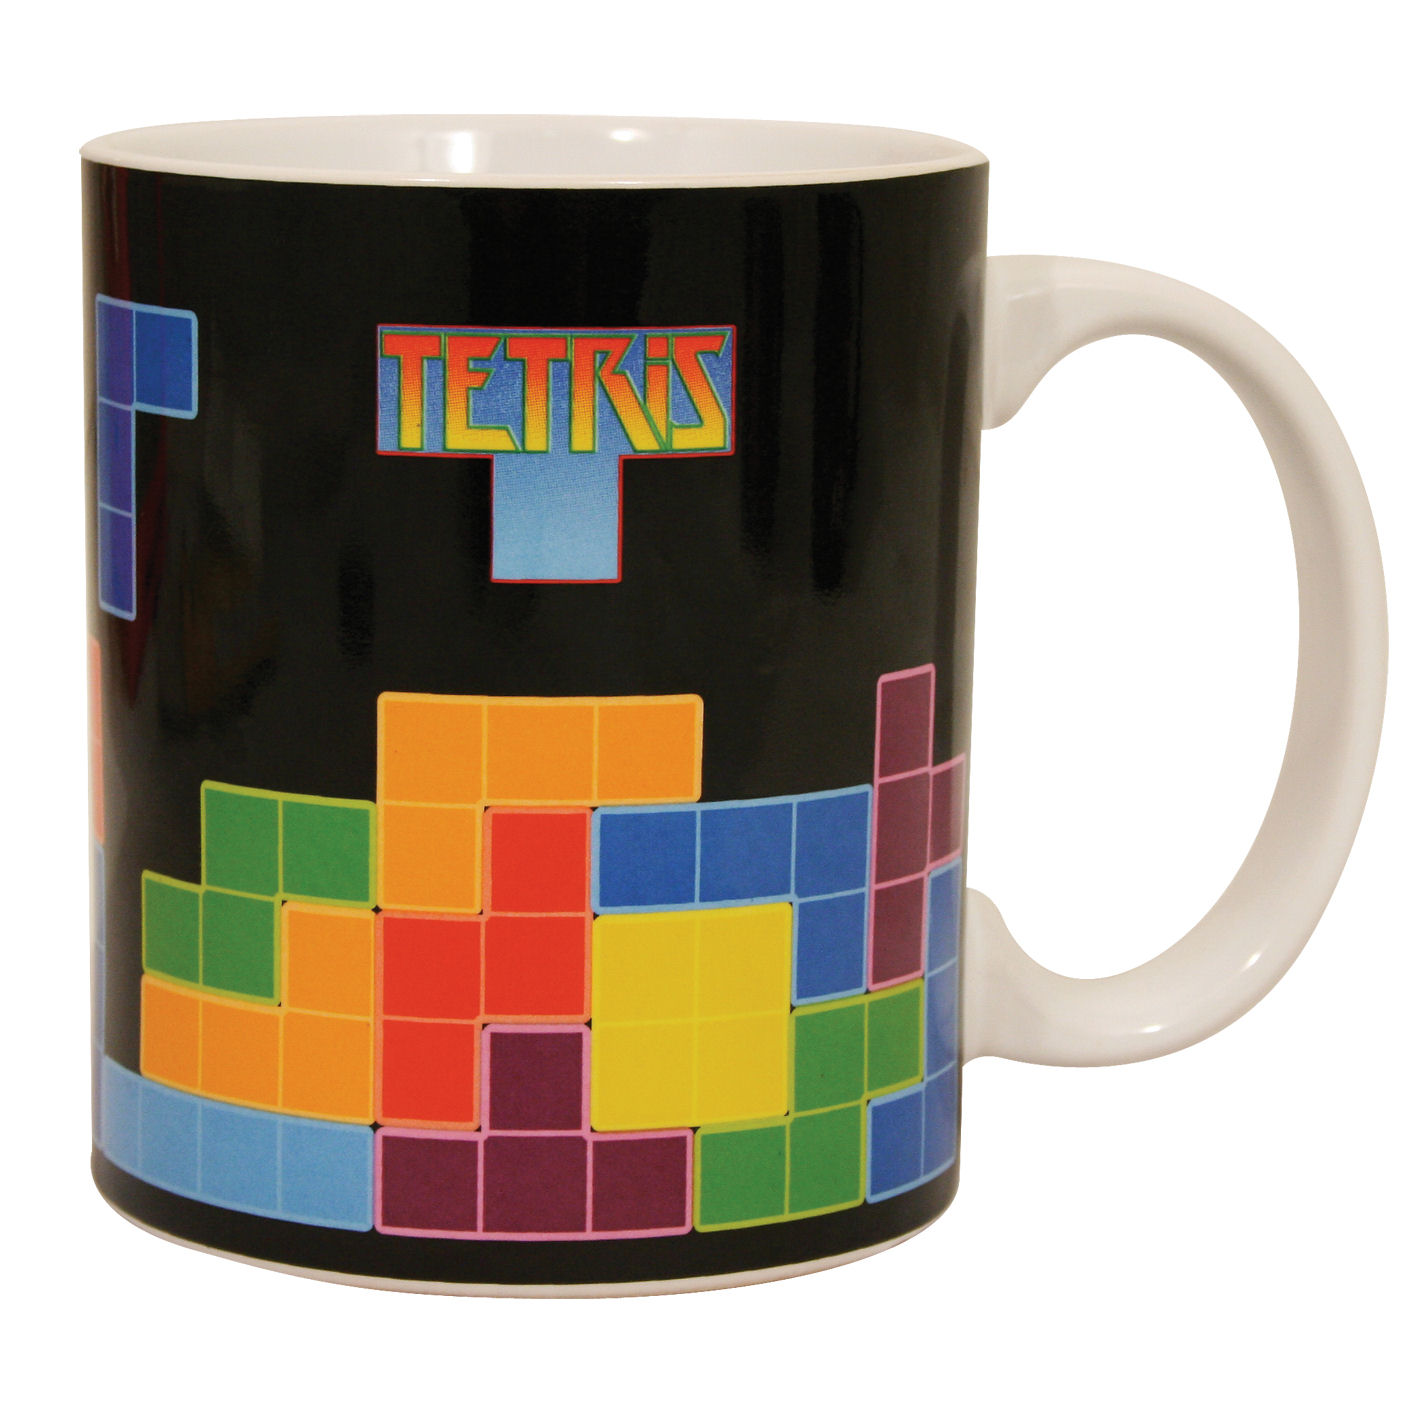 New Tetris Mug Retro Arcade Video Game 80s Coffee Cup